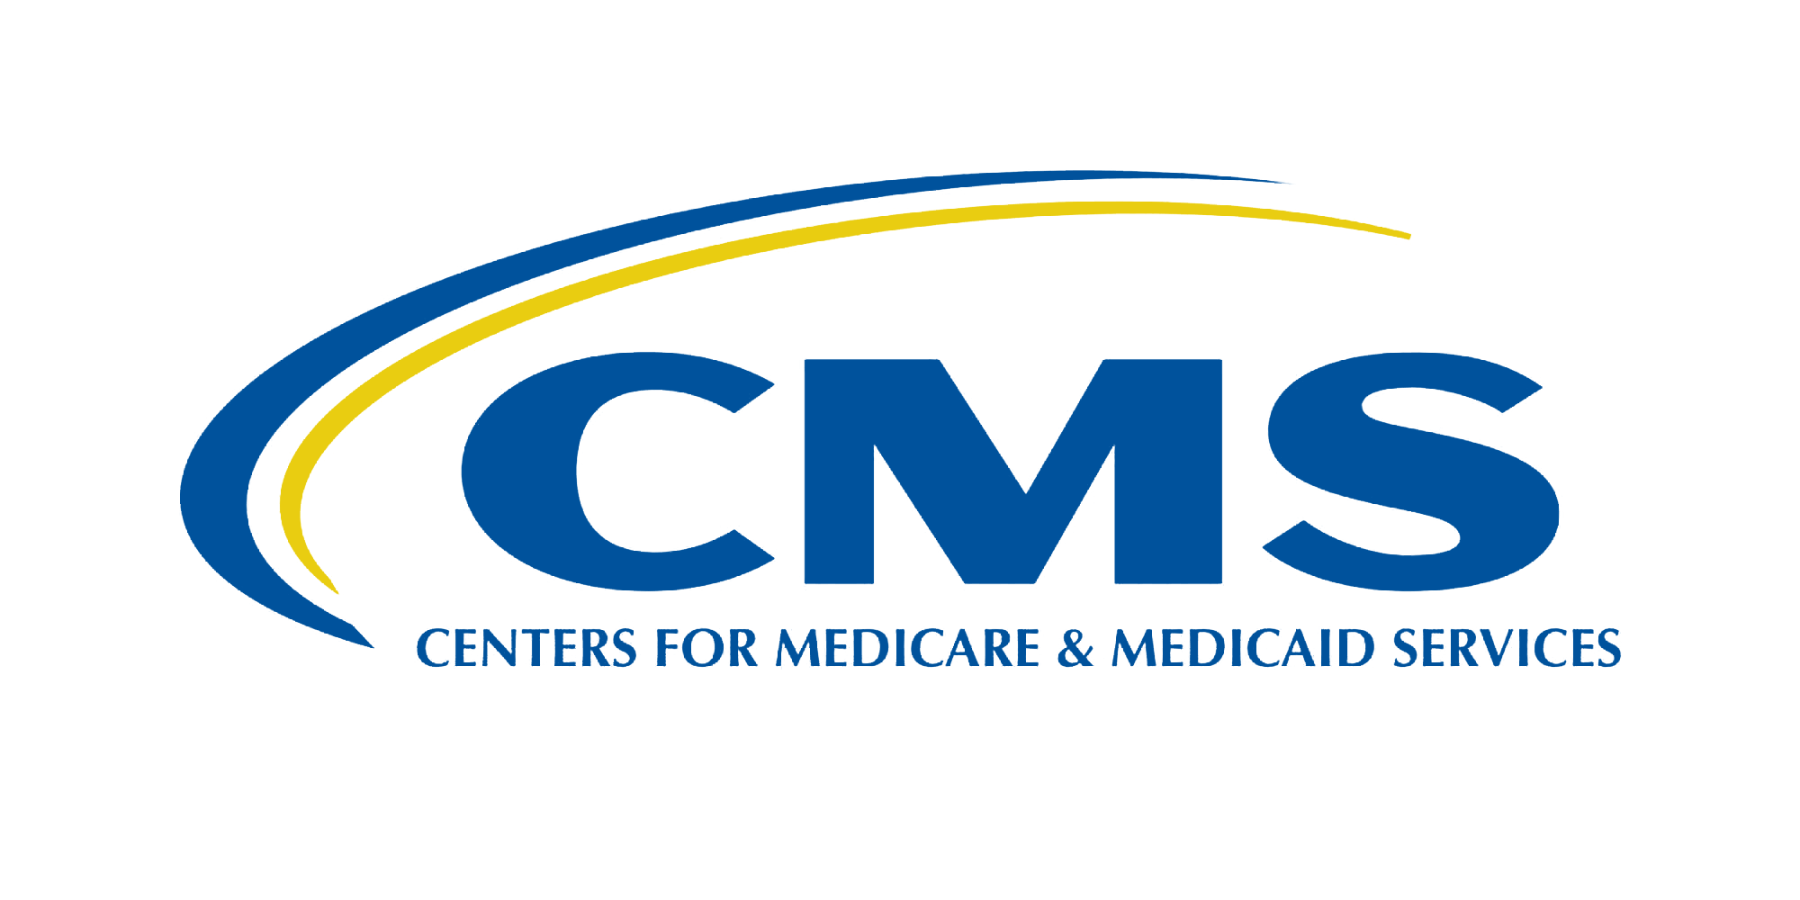 Centers_for_Medicare_and_Medicaid_Services_logo_2014